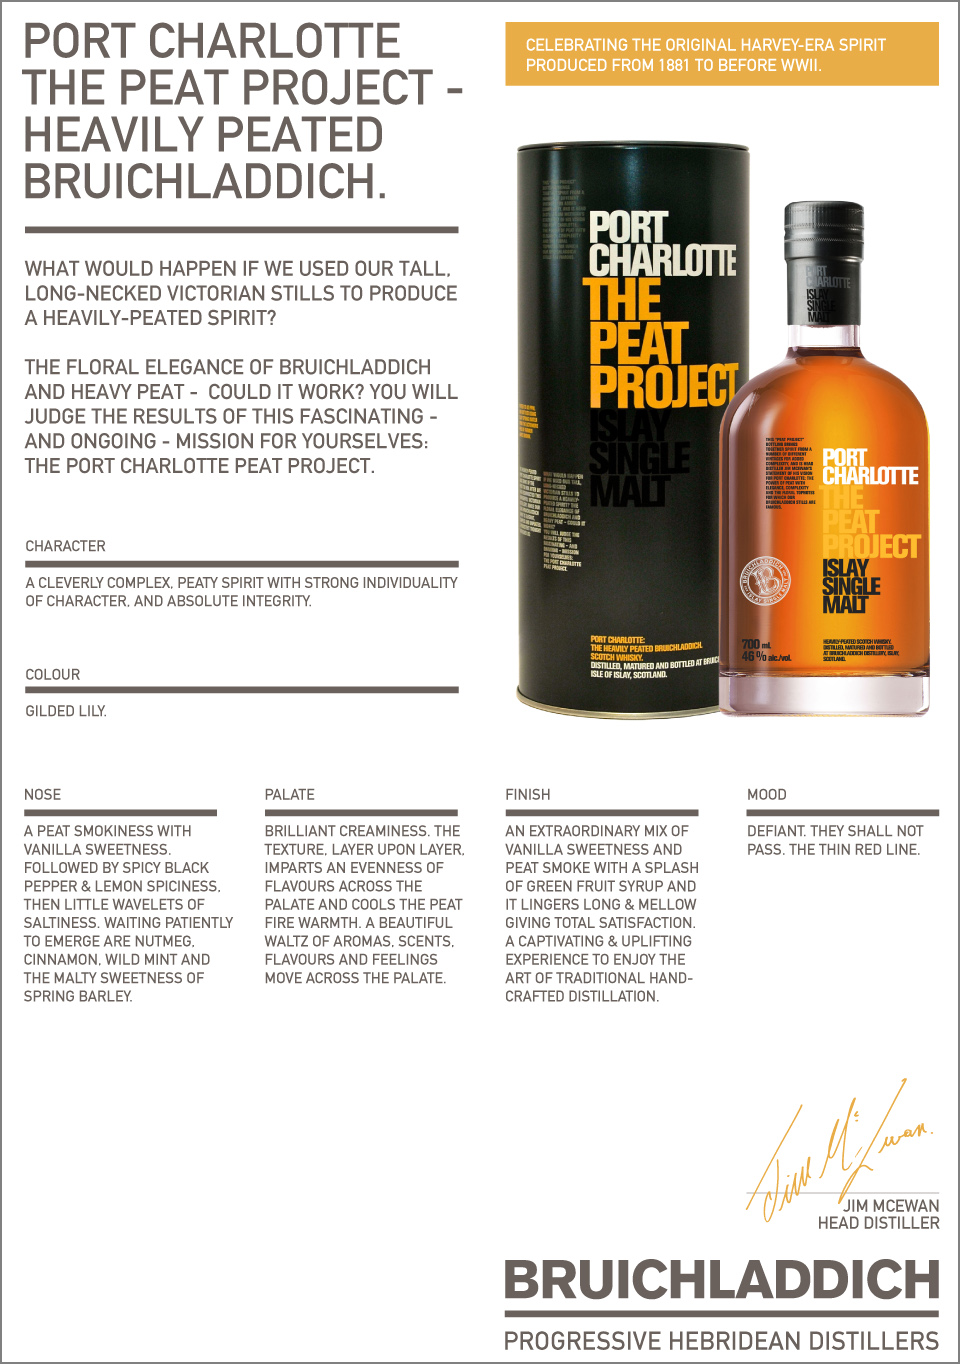 Billede: Bruichladdich Port Charlotte - The Peat Project - Taste Notes.jpg